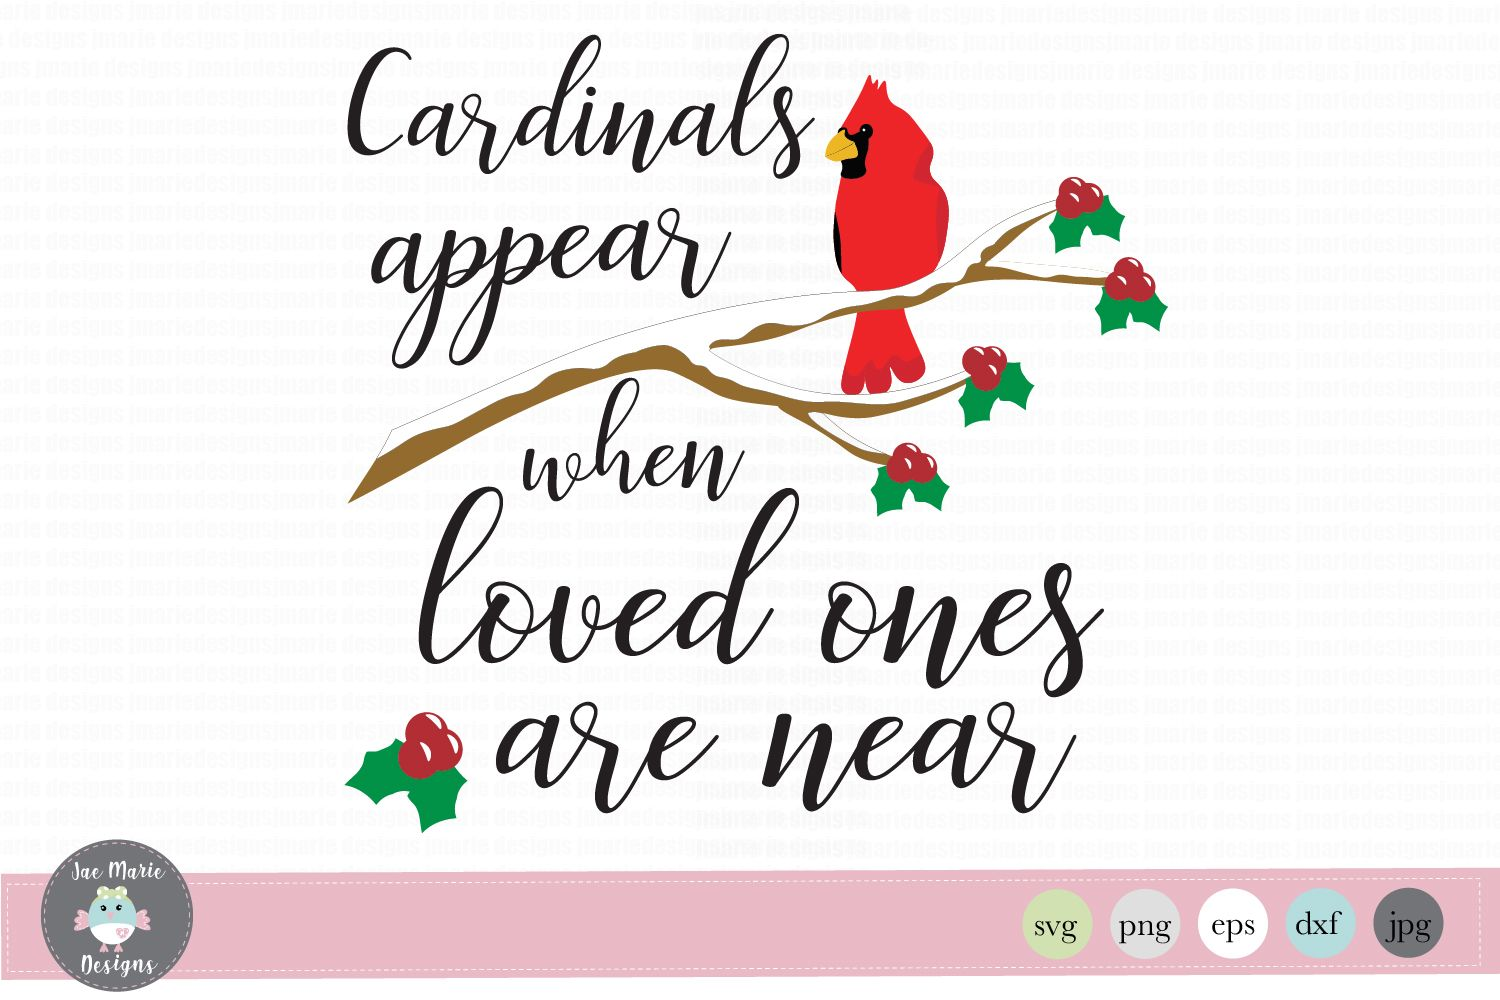 Cardinals appear when loved ones are near graphic by